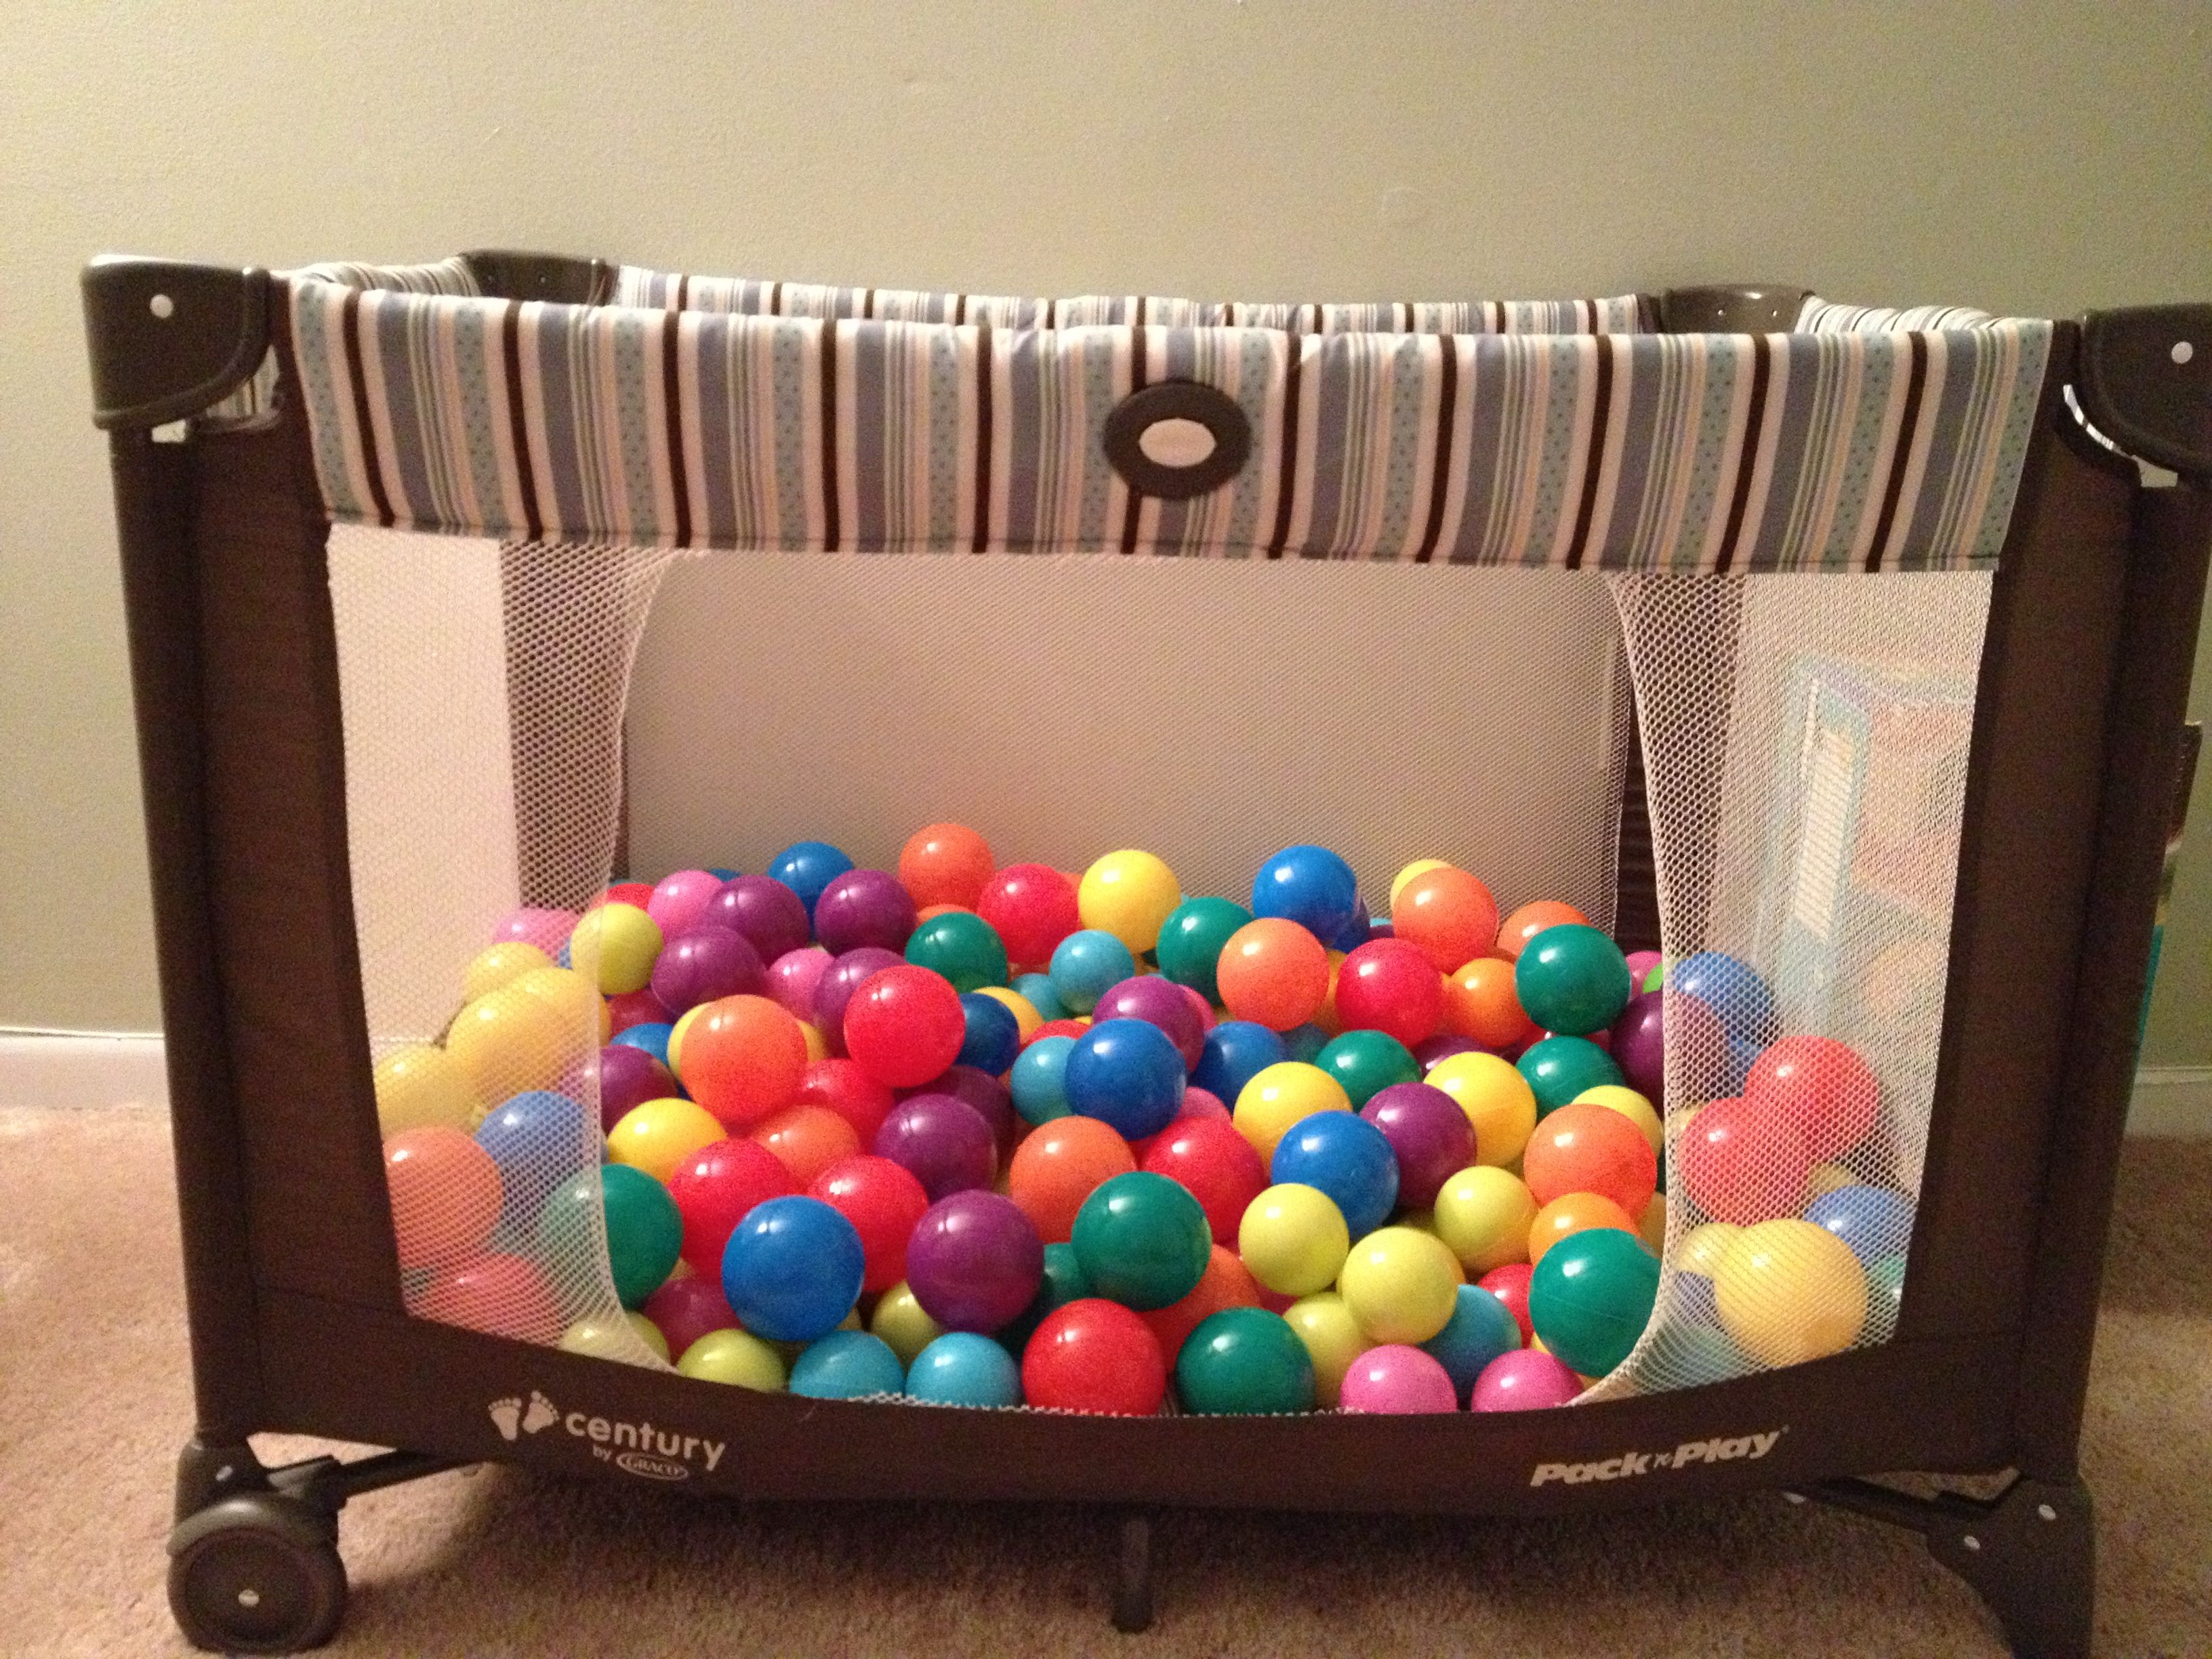 Best Idea Ever For Your Old Pack N Play Get Balls And Cut A Hole In